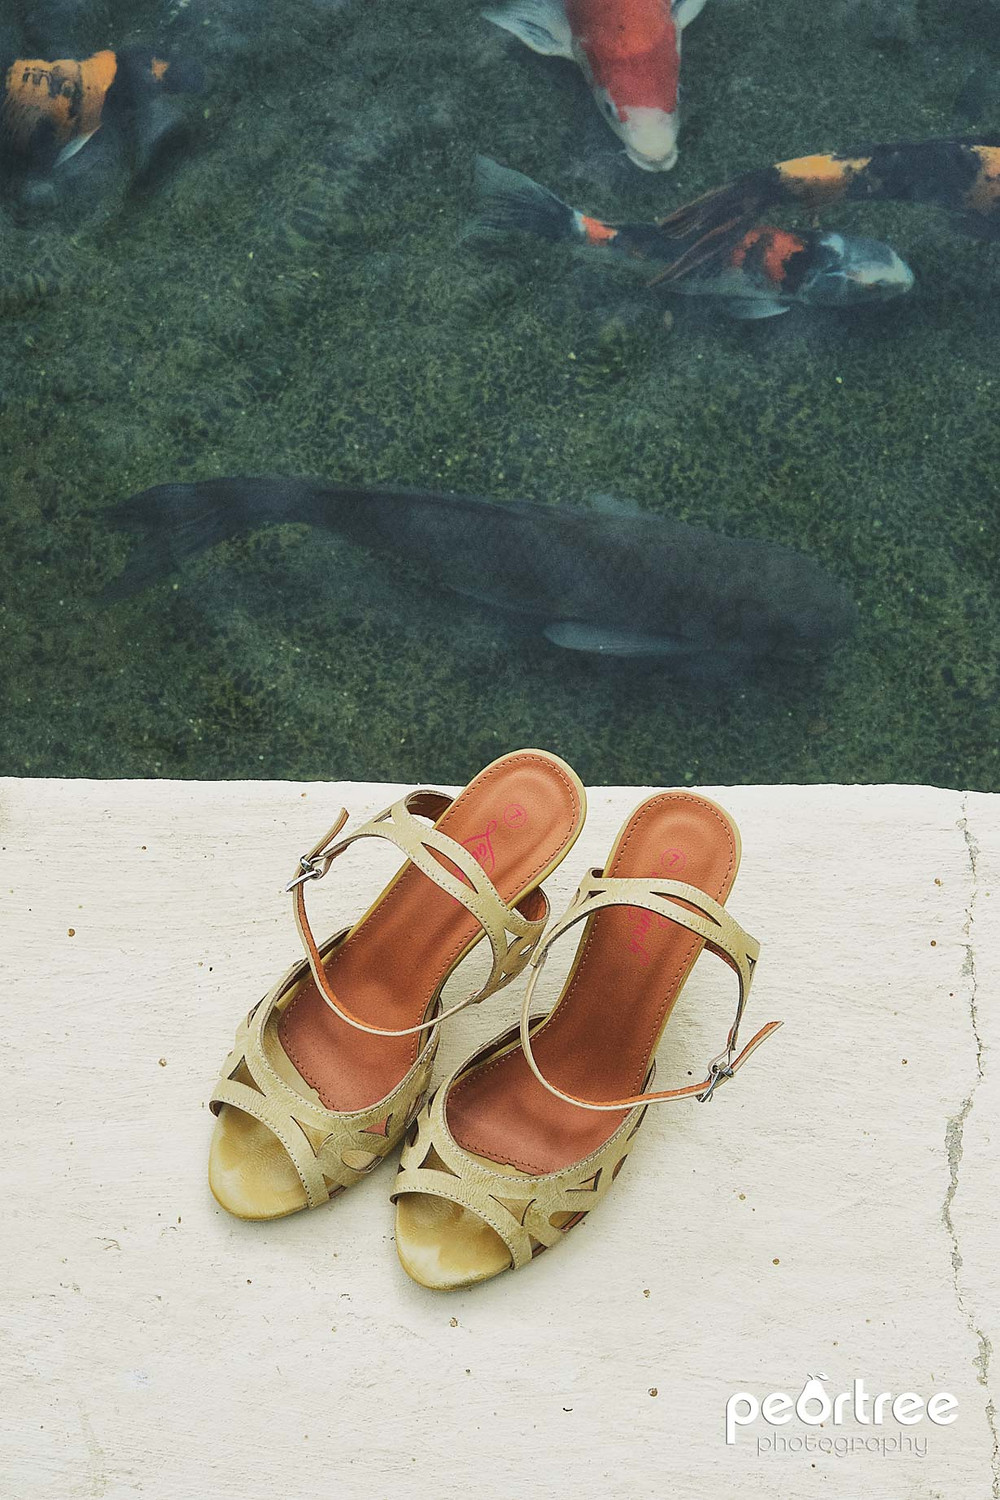 wedding shoes and koi fishes